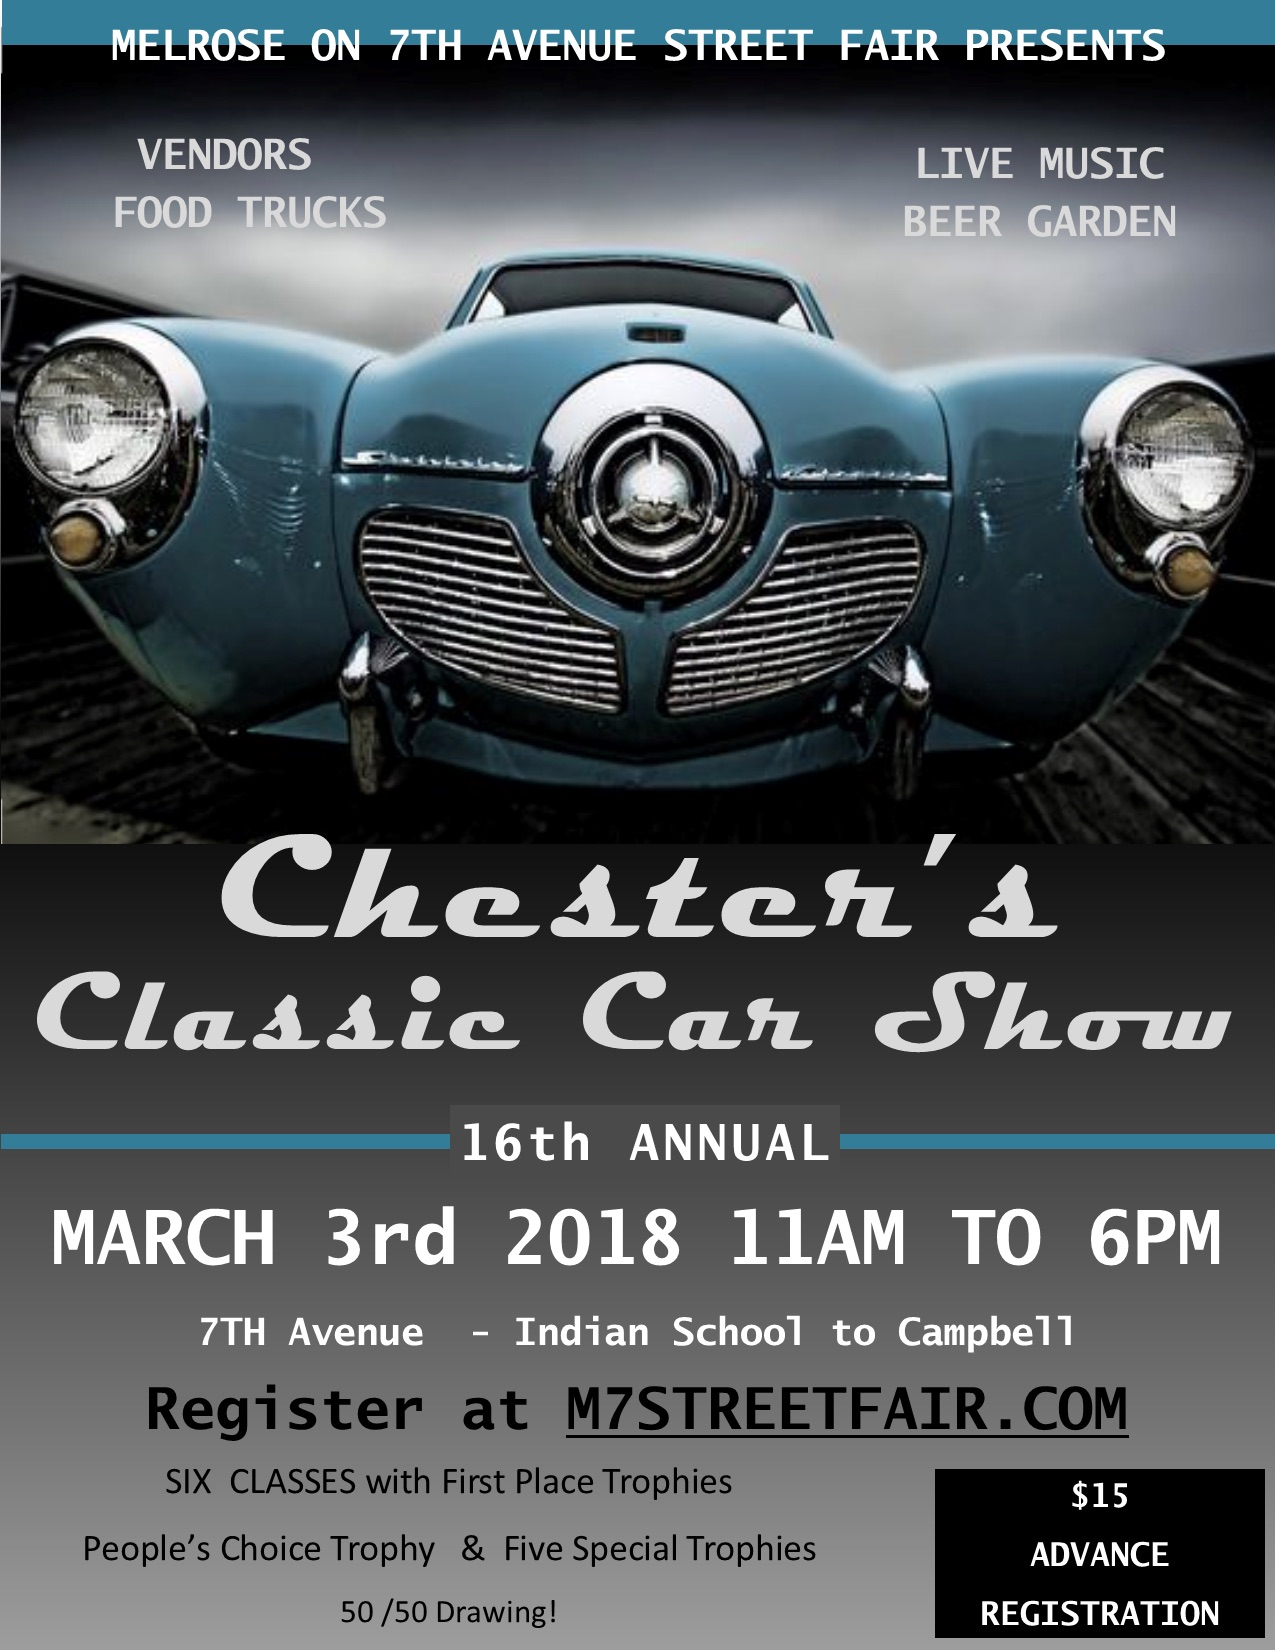 CLICK HERE FOR CAR SHOW INFO